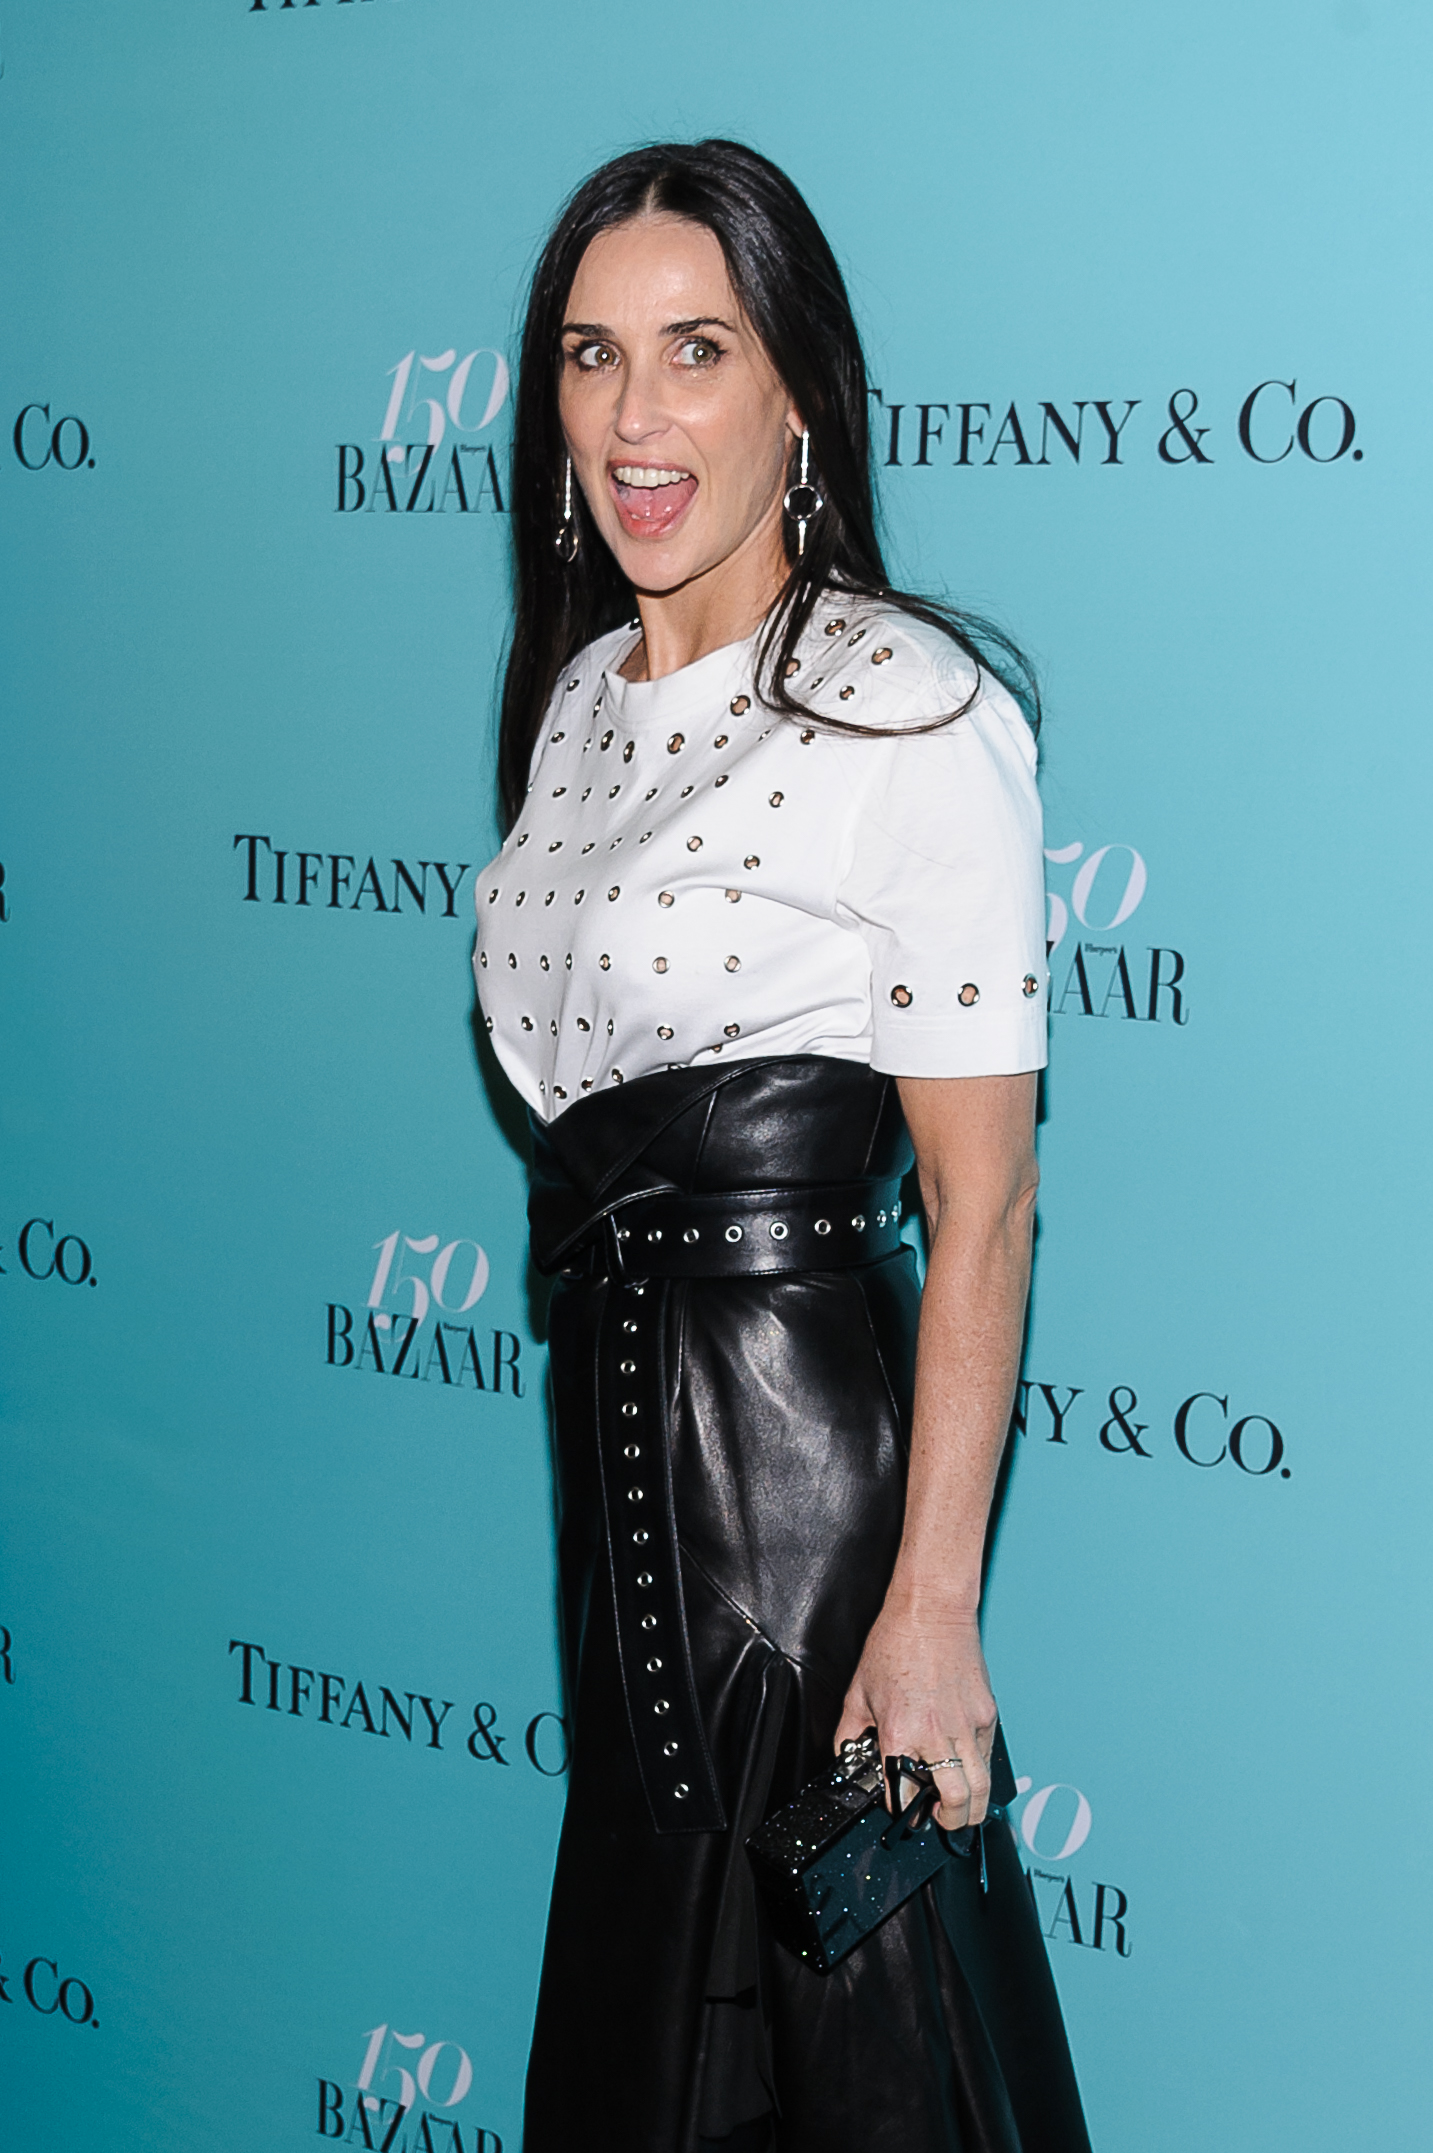 Demi Moore arrives at Harper's Bazaar 150th Anniversary at the Rainbow Room in New York April 19, 2017. (C.Smith/WENN.com)